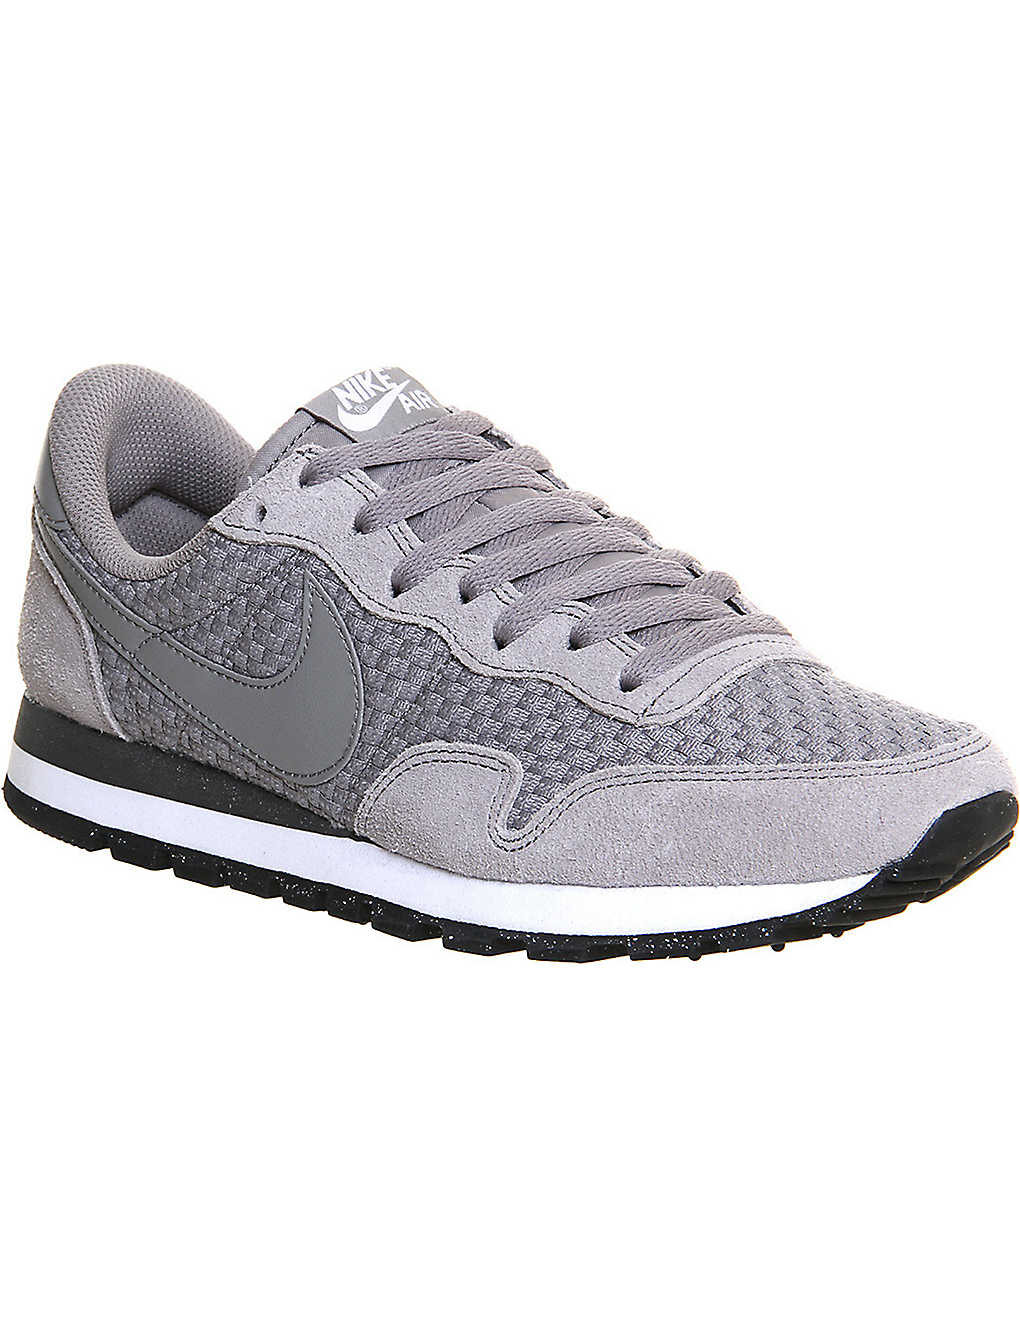 outlet store 44ce5 6f494 NIKE Air pegasus 83 suede trainers